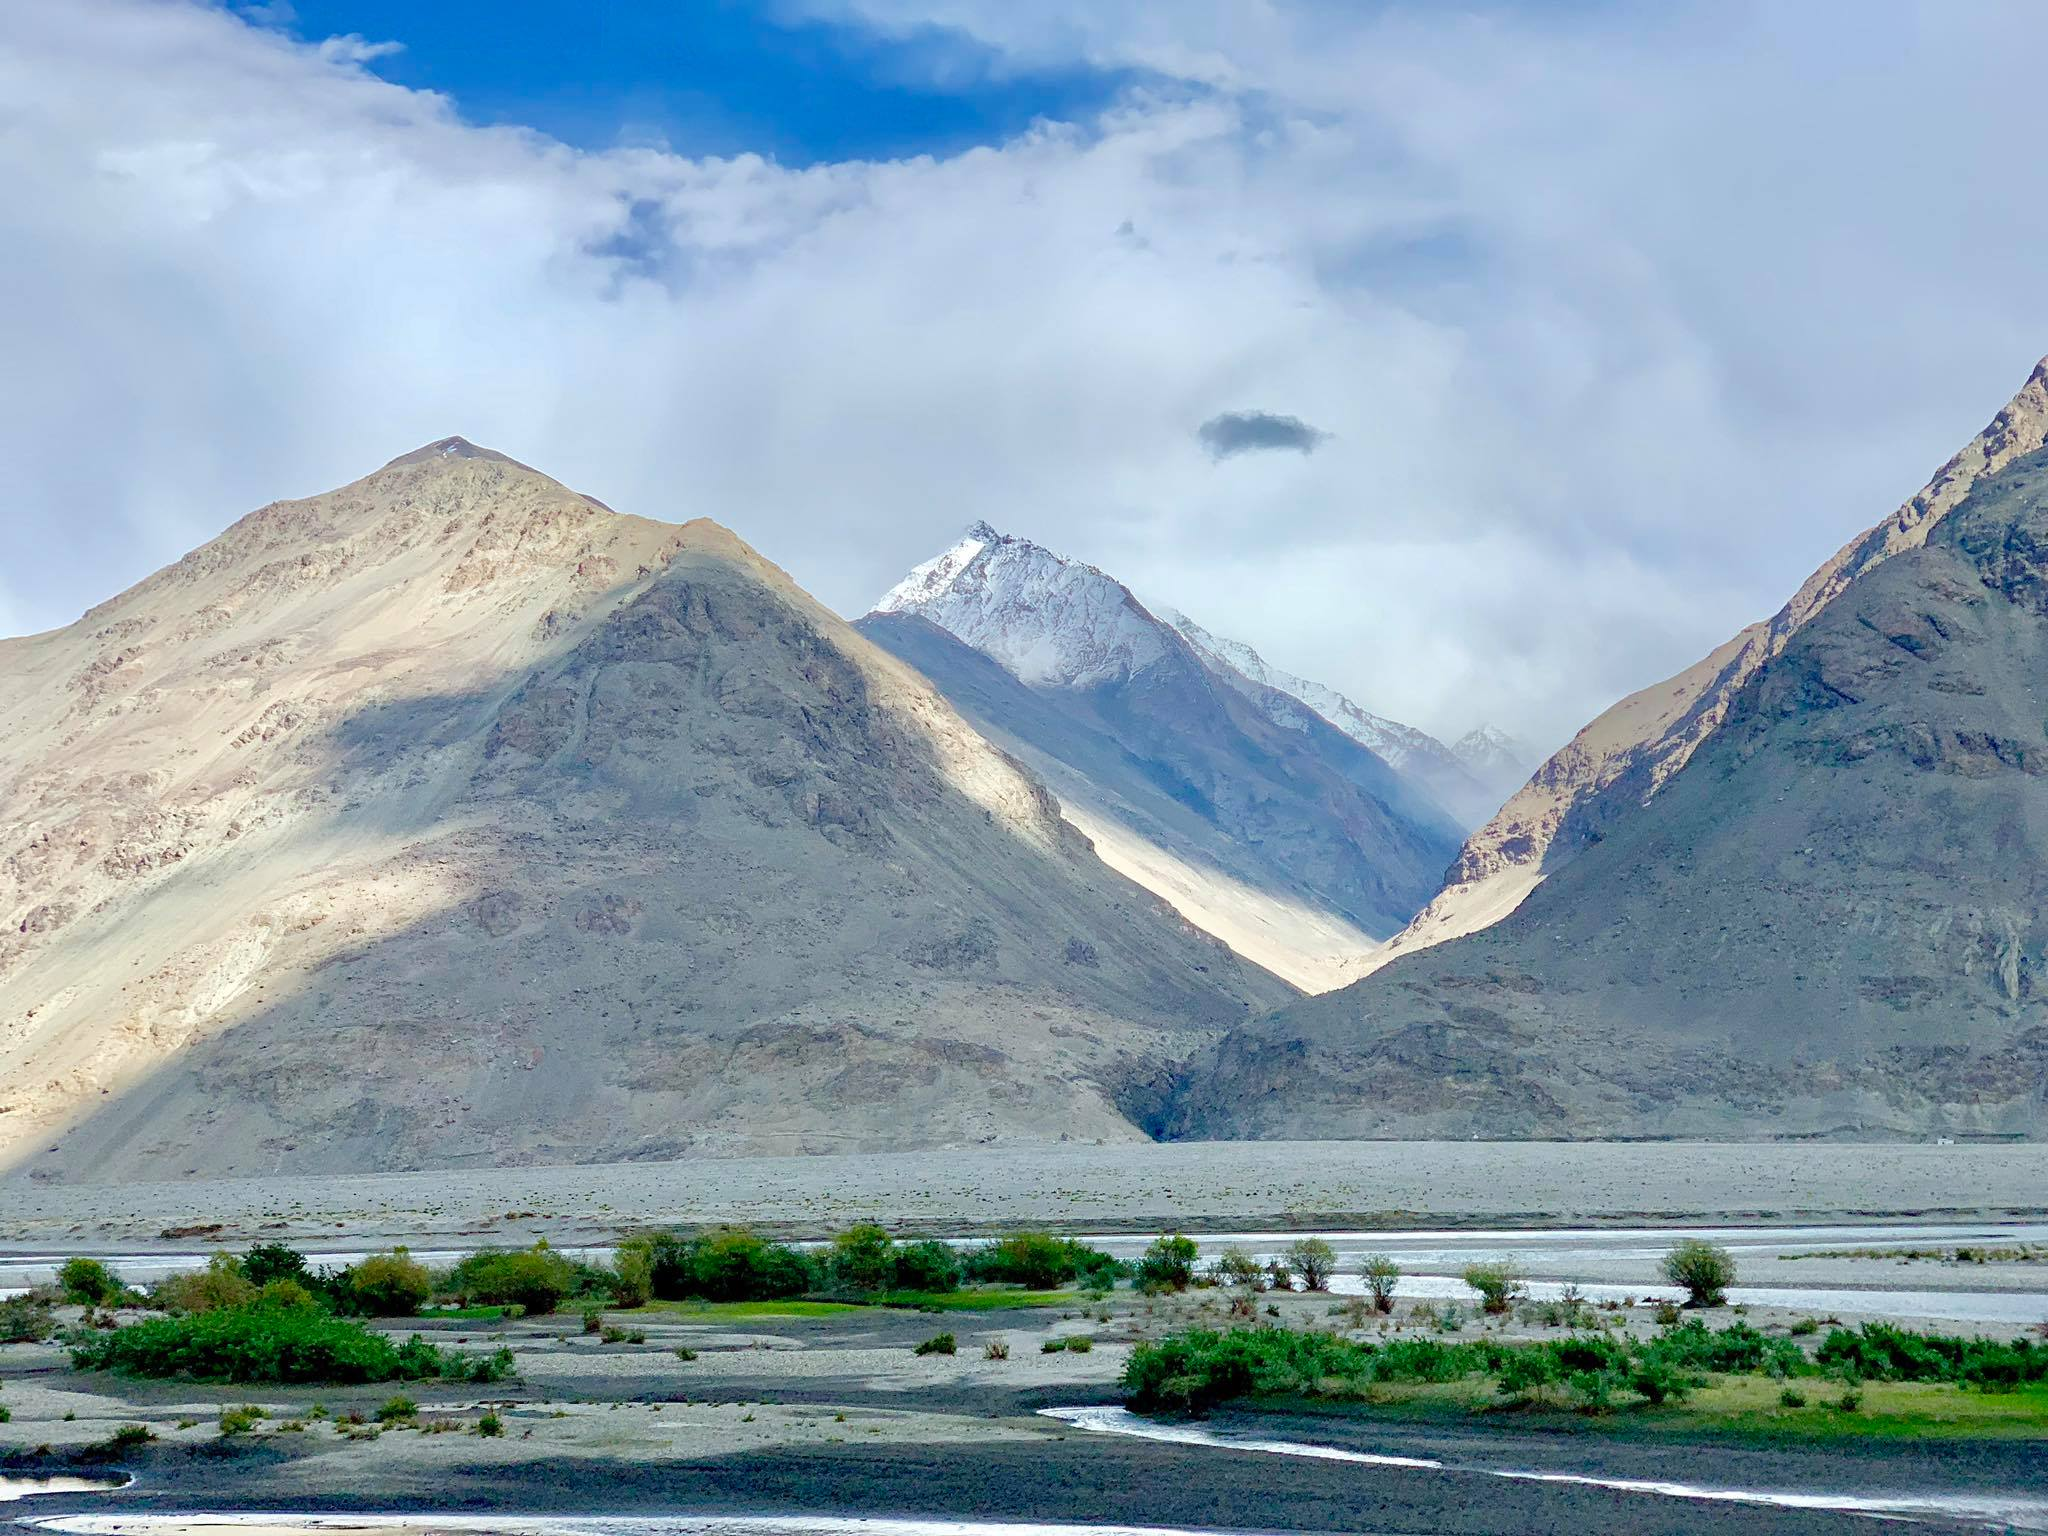 Kach Solo Travels in 2019 Driving from Ishkashim to Wakhan Valley14.jpg